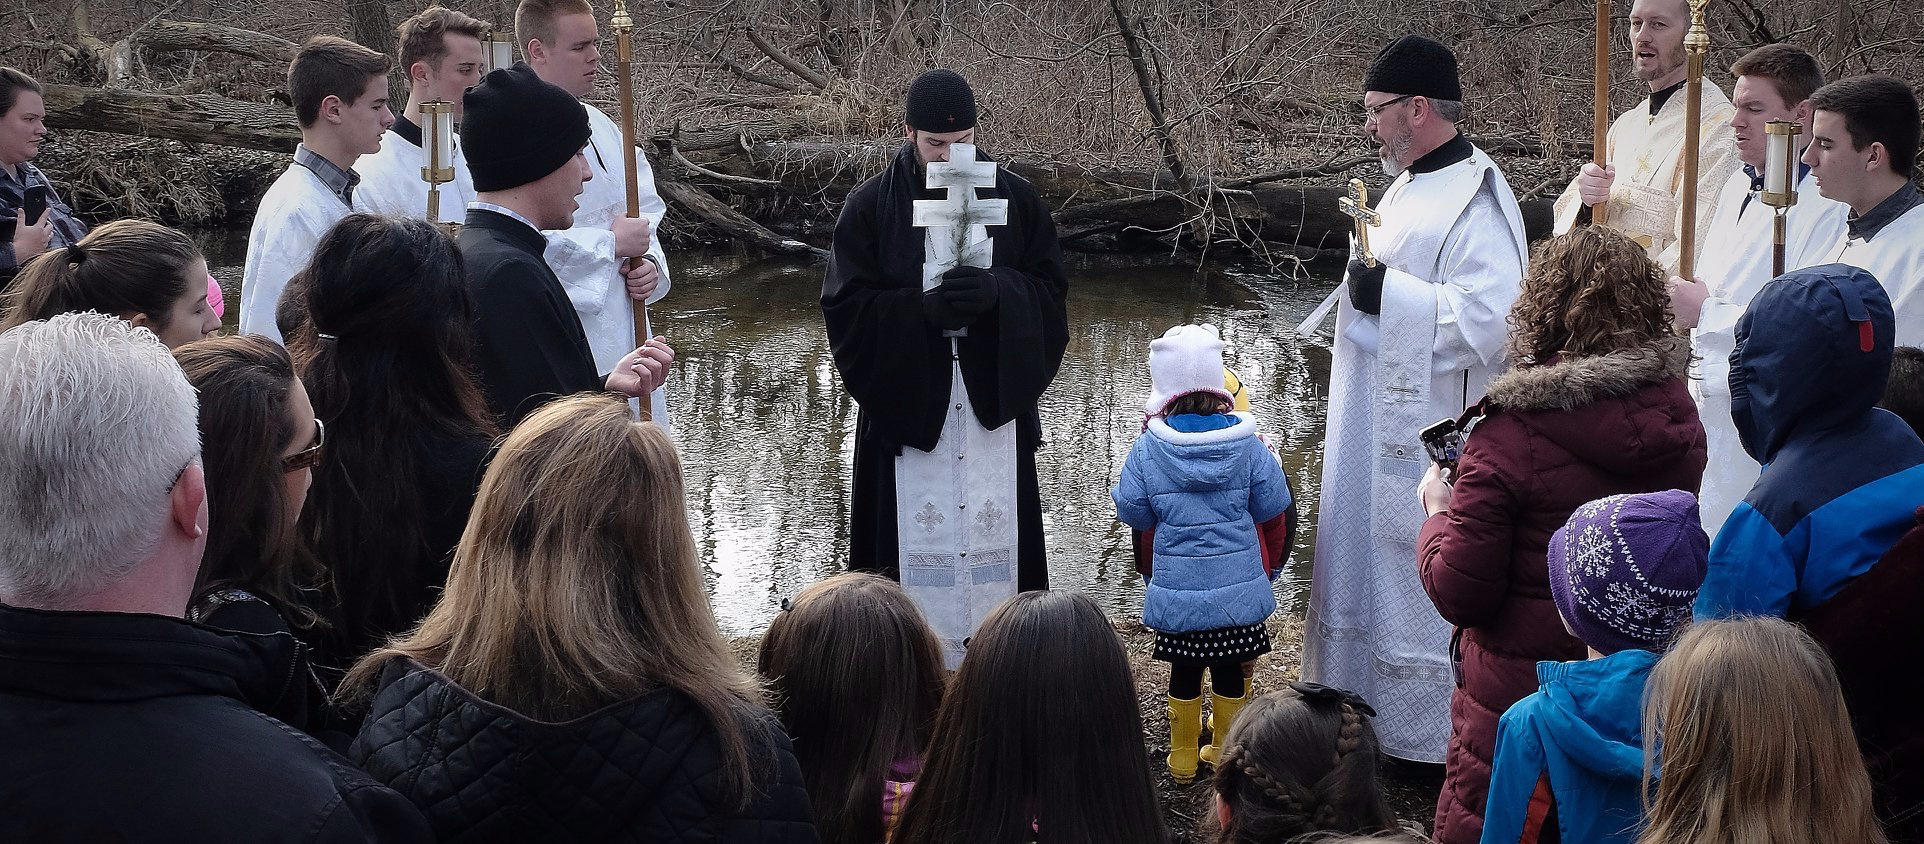 Fr. Gabriel and the Faithful of St. Mary Magdalene, blessing the River